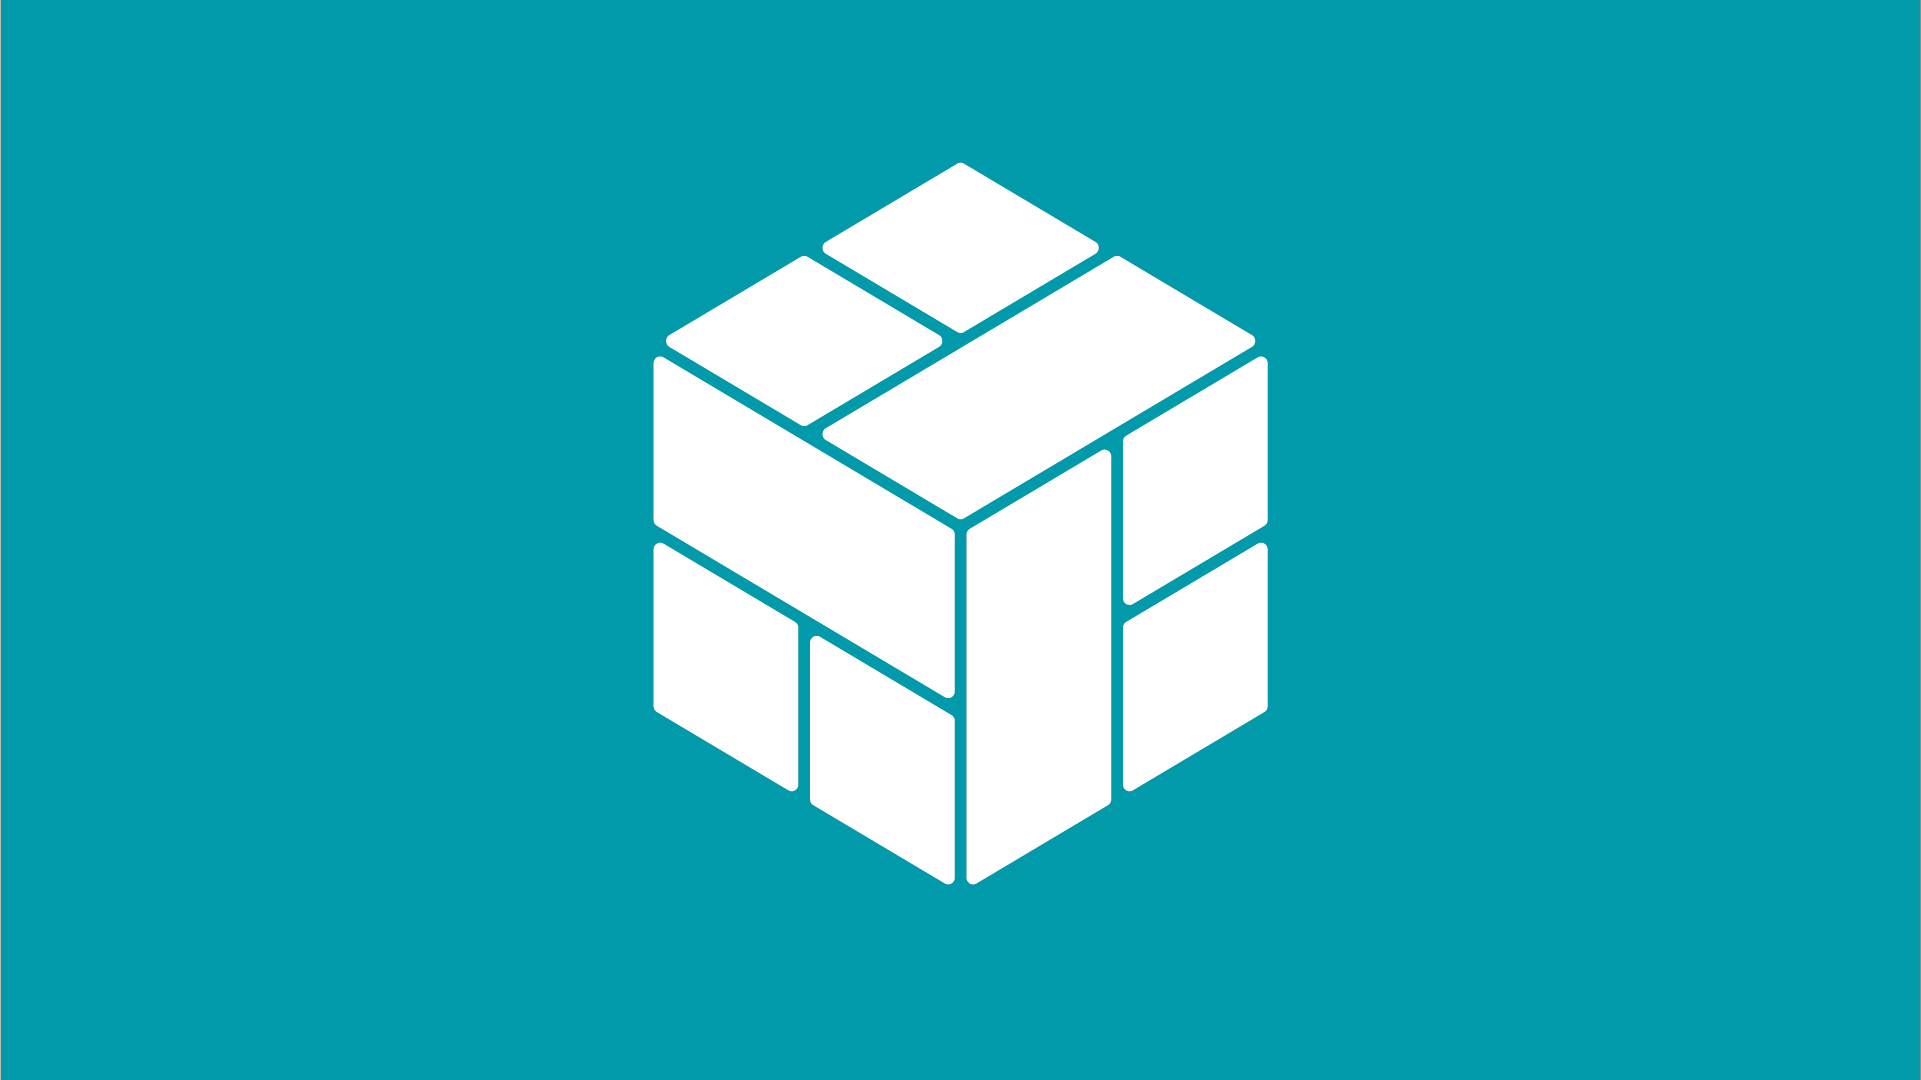 Image of cube within CLT logo